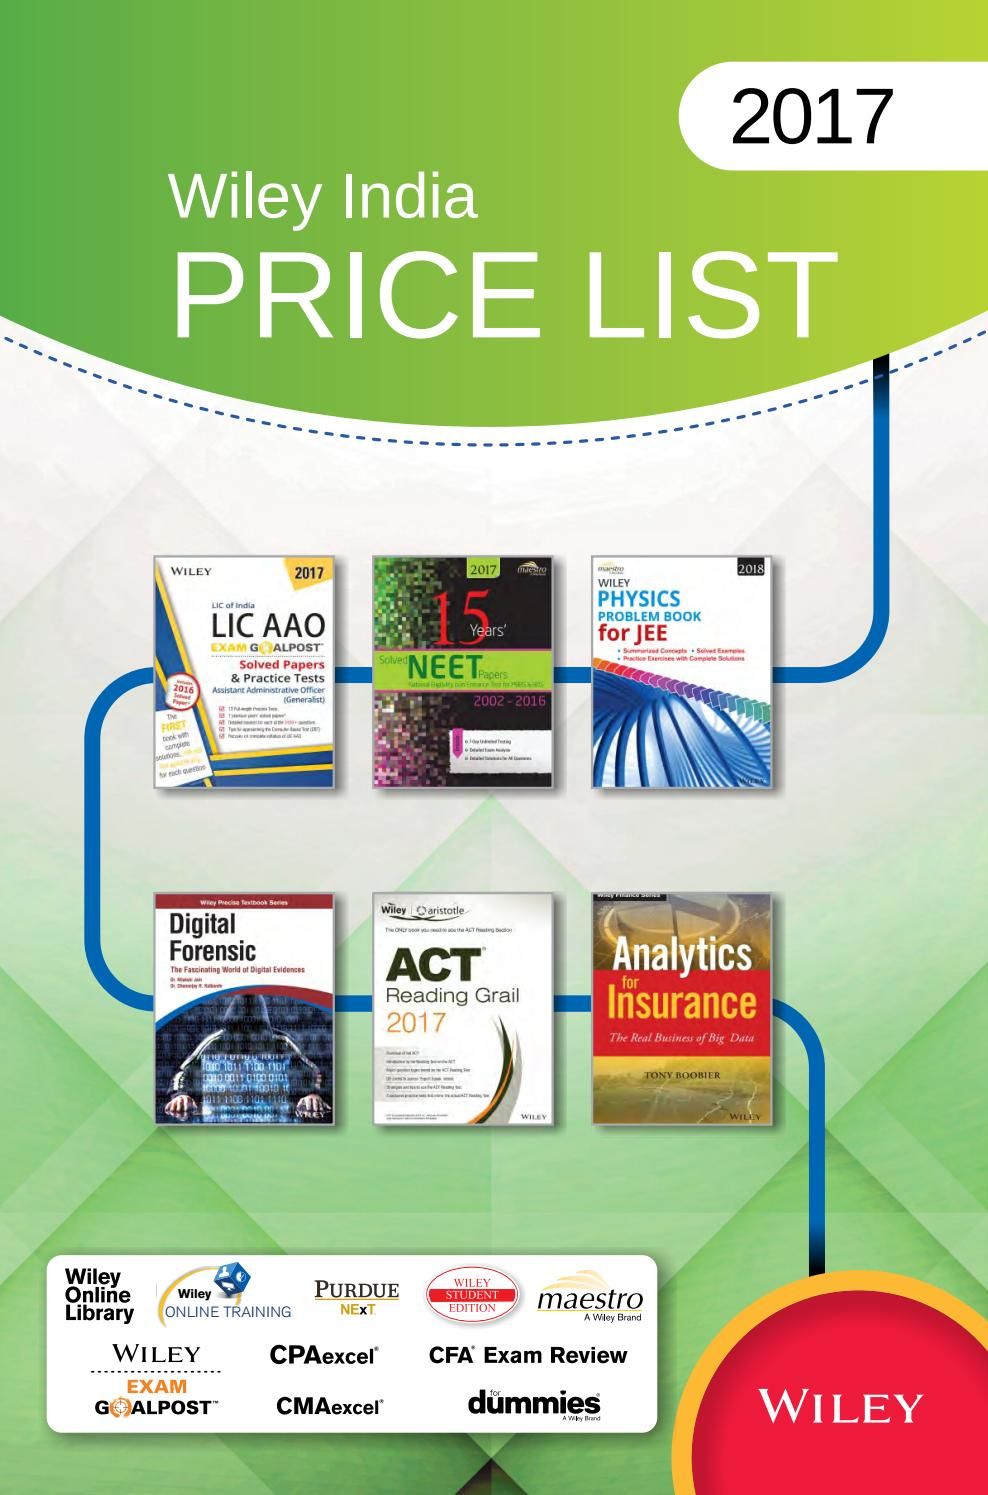 Wiley india price list 2017 by wiley india issuu fandeluxe Gallery